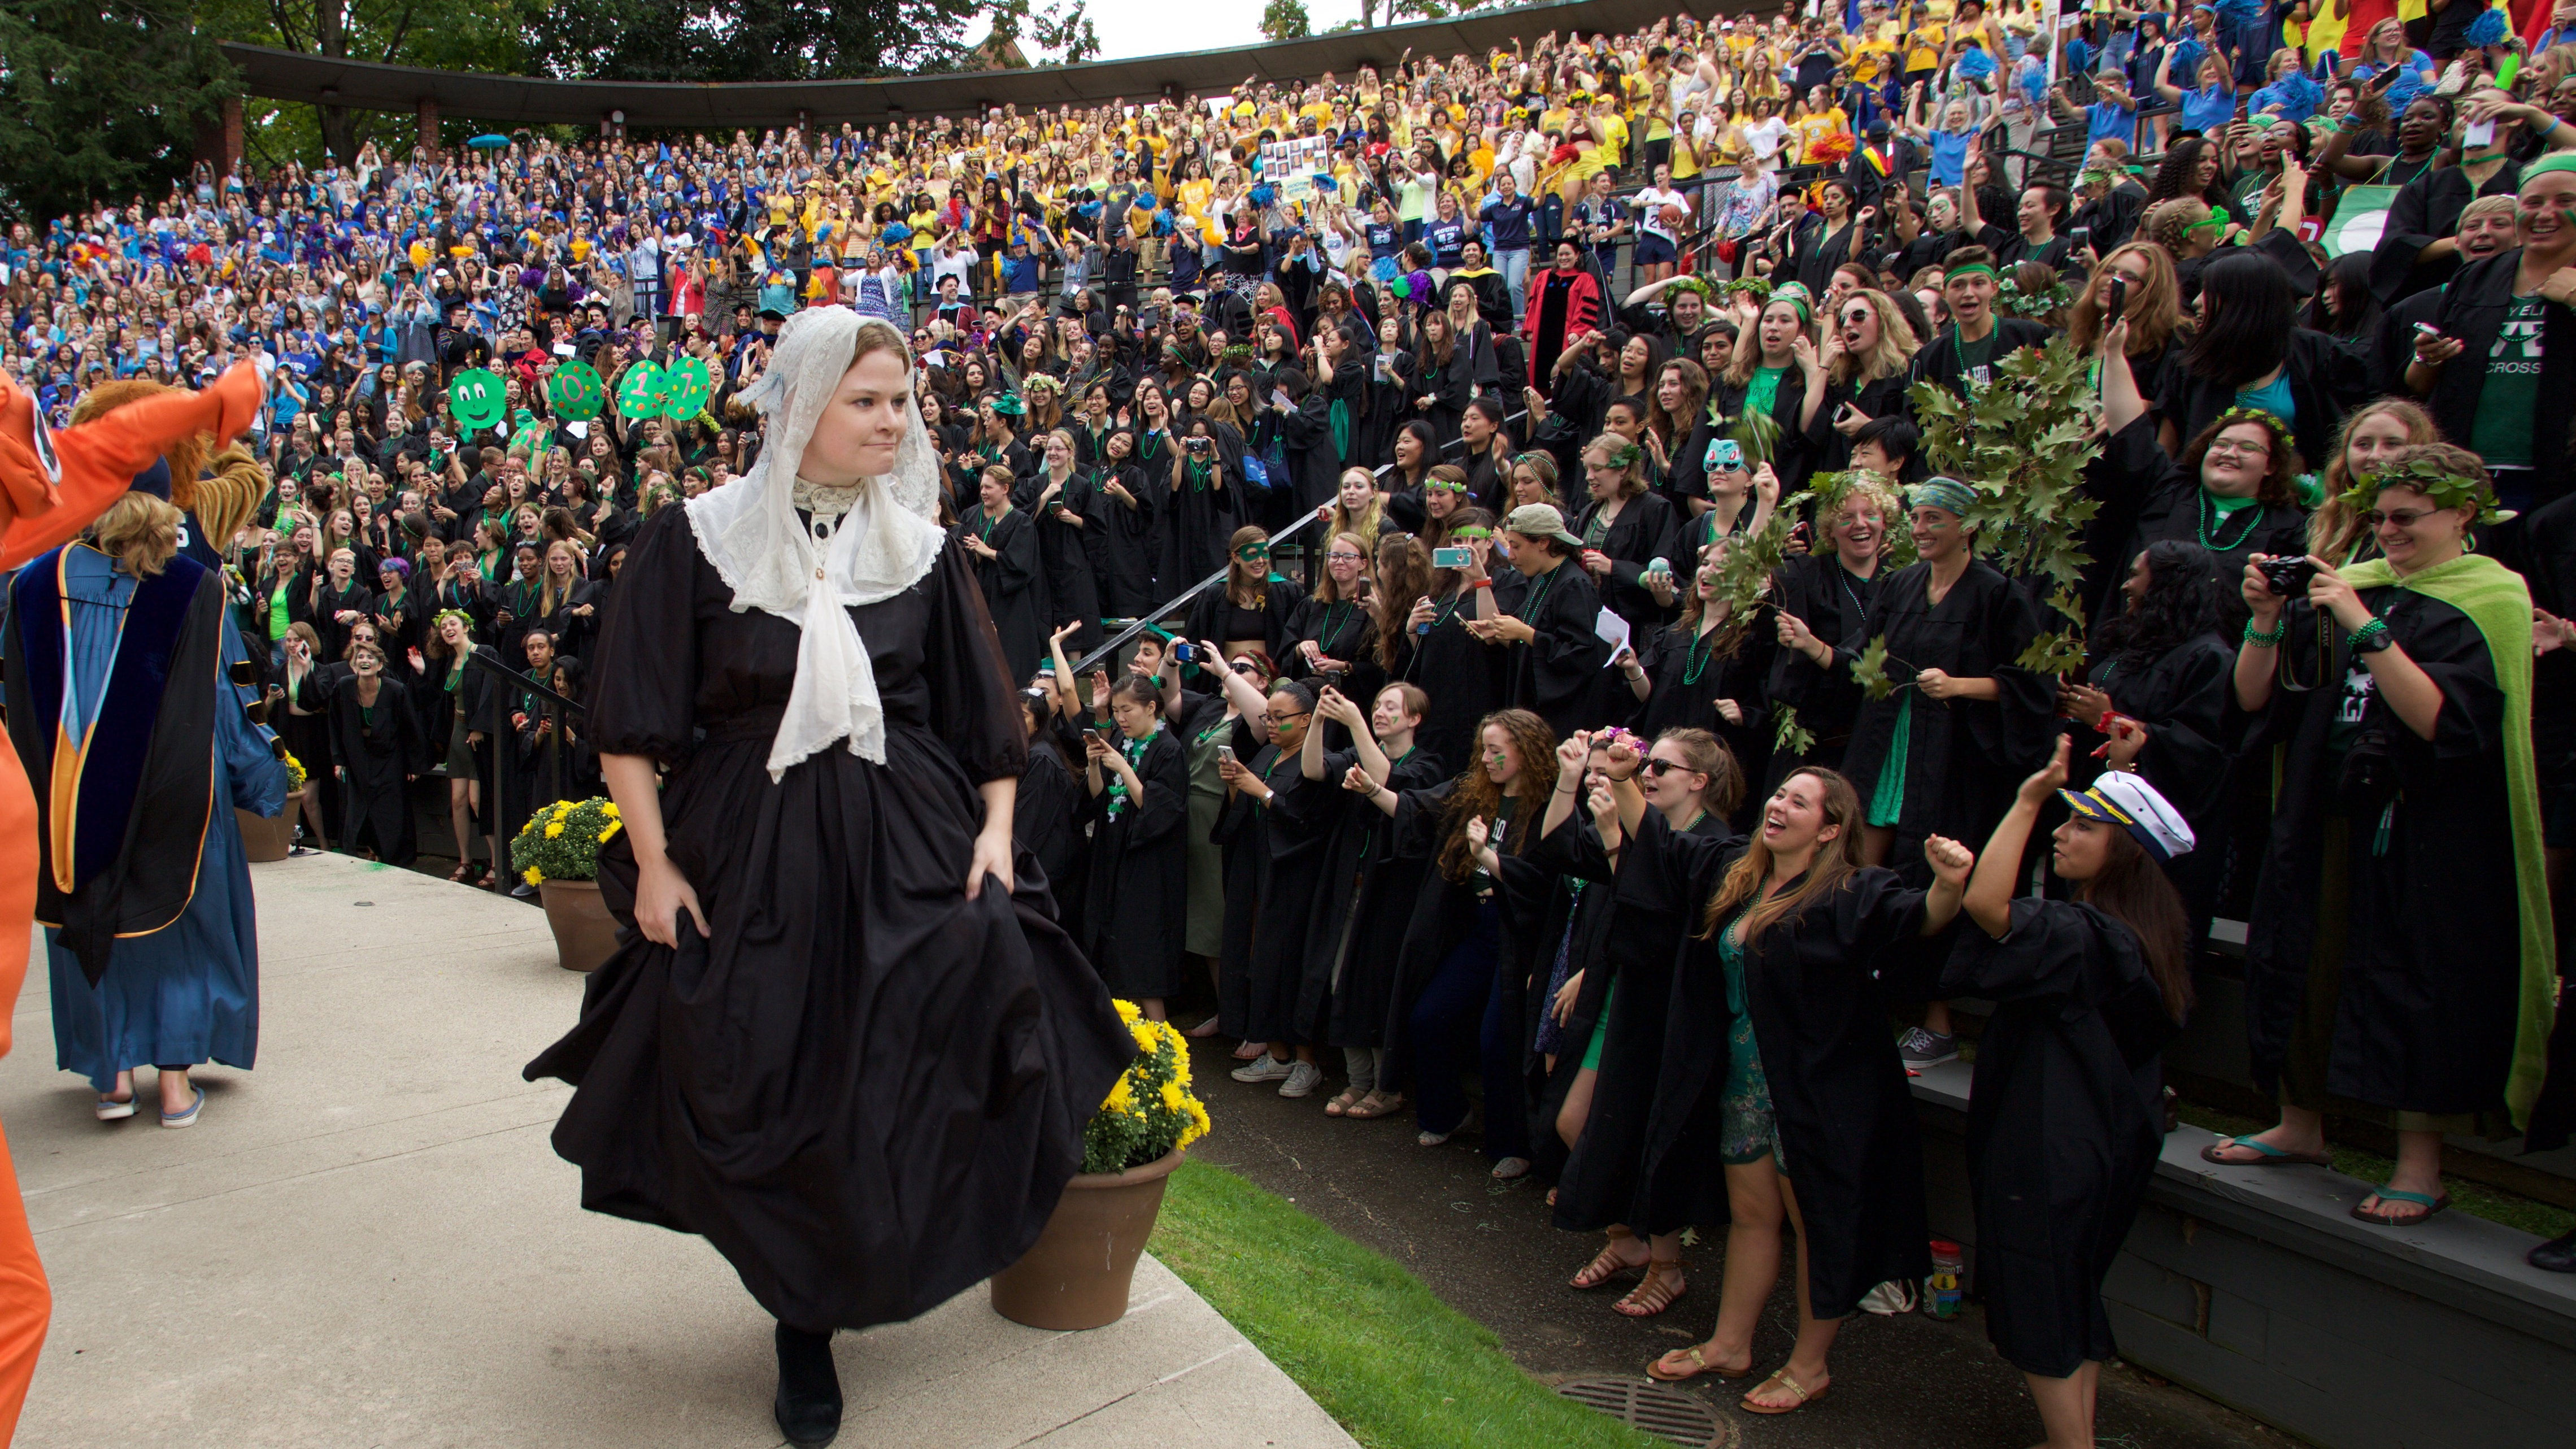 Mary Lyon wows the crowd at Convocation 2016, during the flash mob